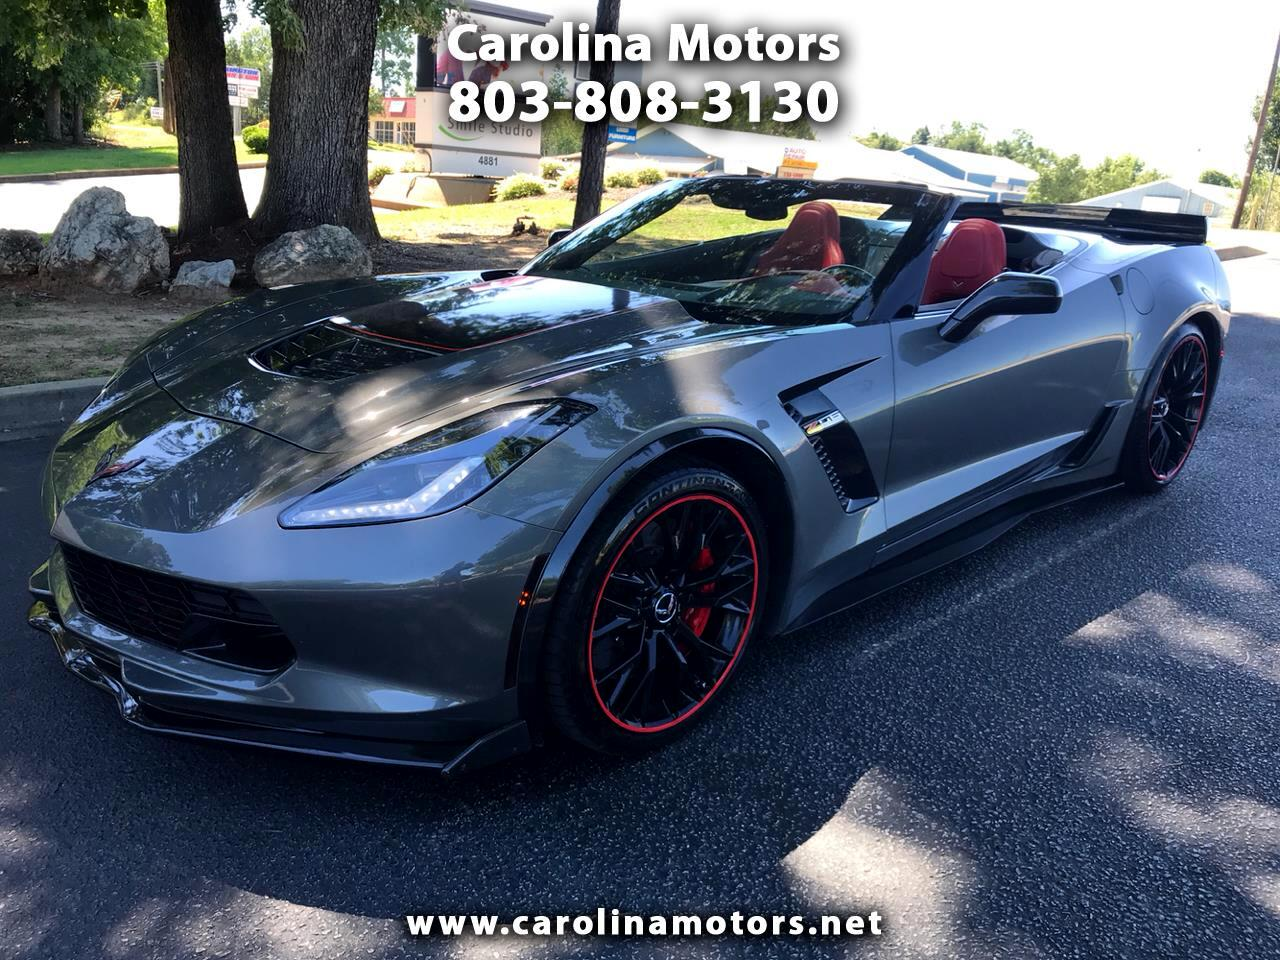 2015 Chevrolet Corvette 2LZ Z06 Convertible